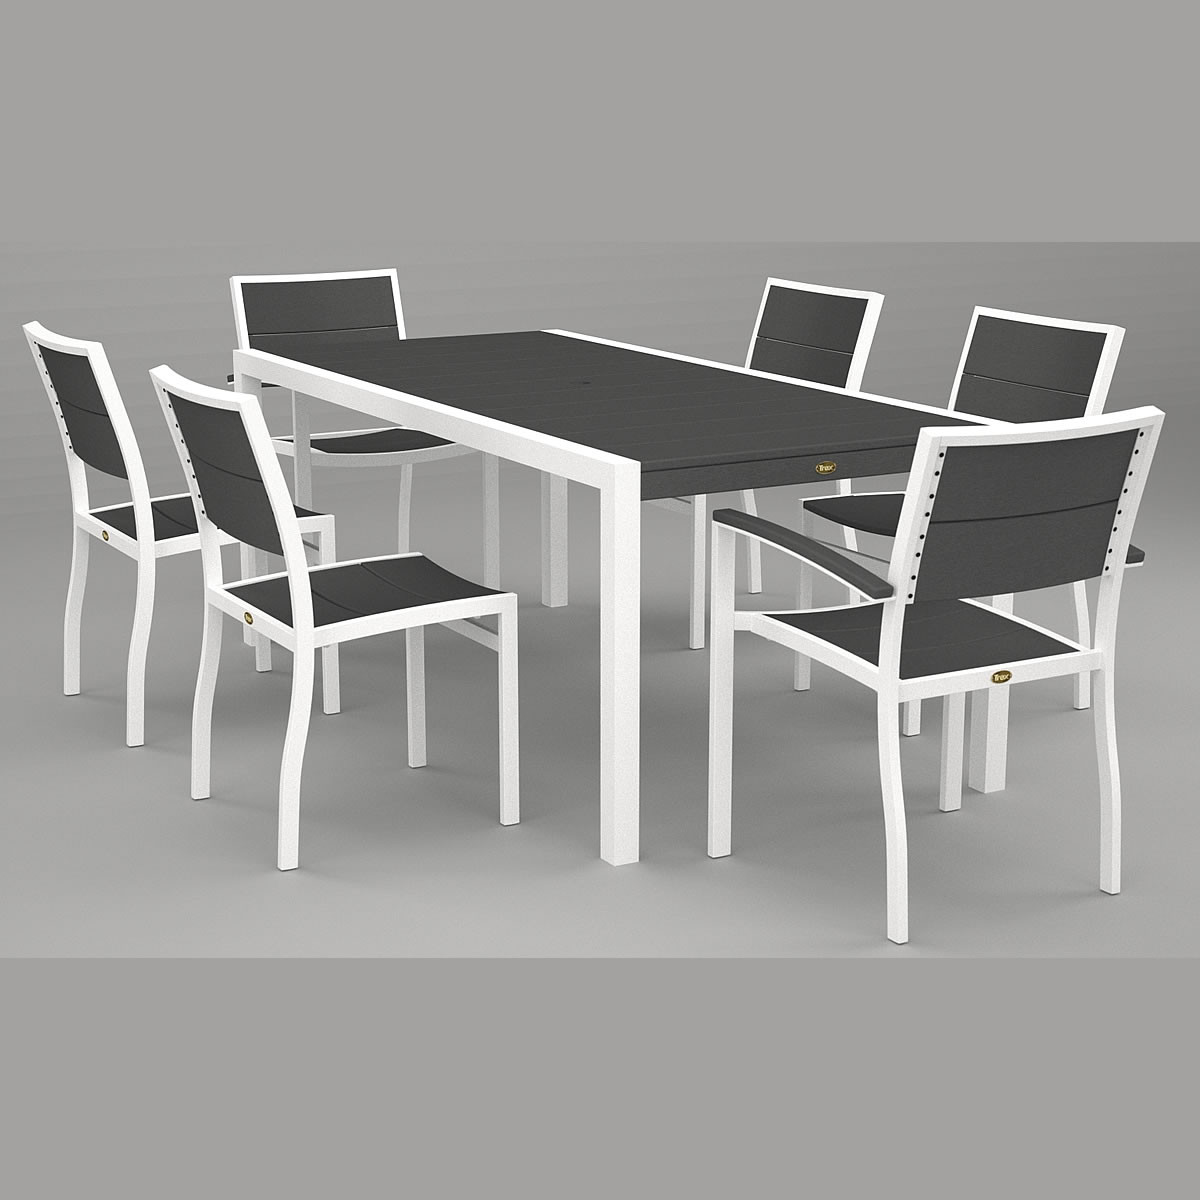 Trex® Outdoor Furniture Surf City 36 x 73 In Dining Table